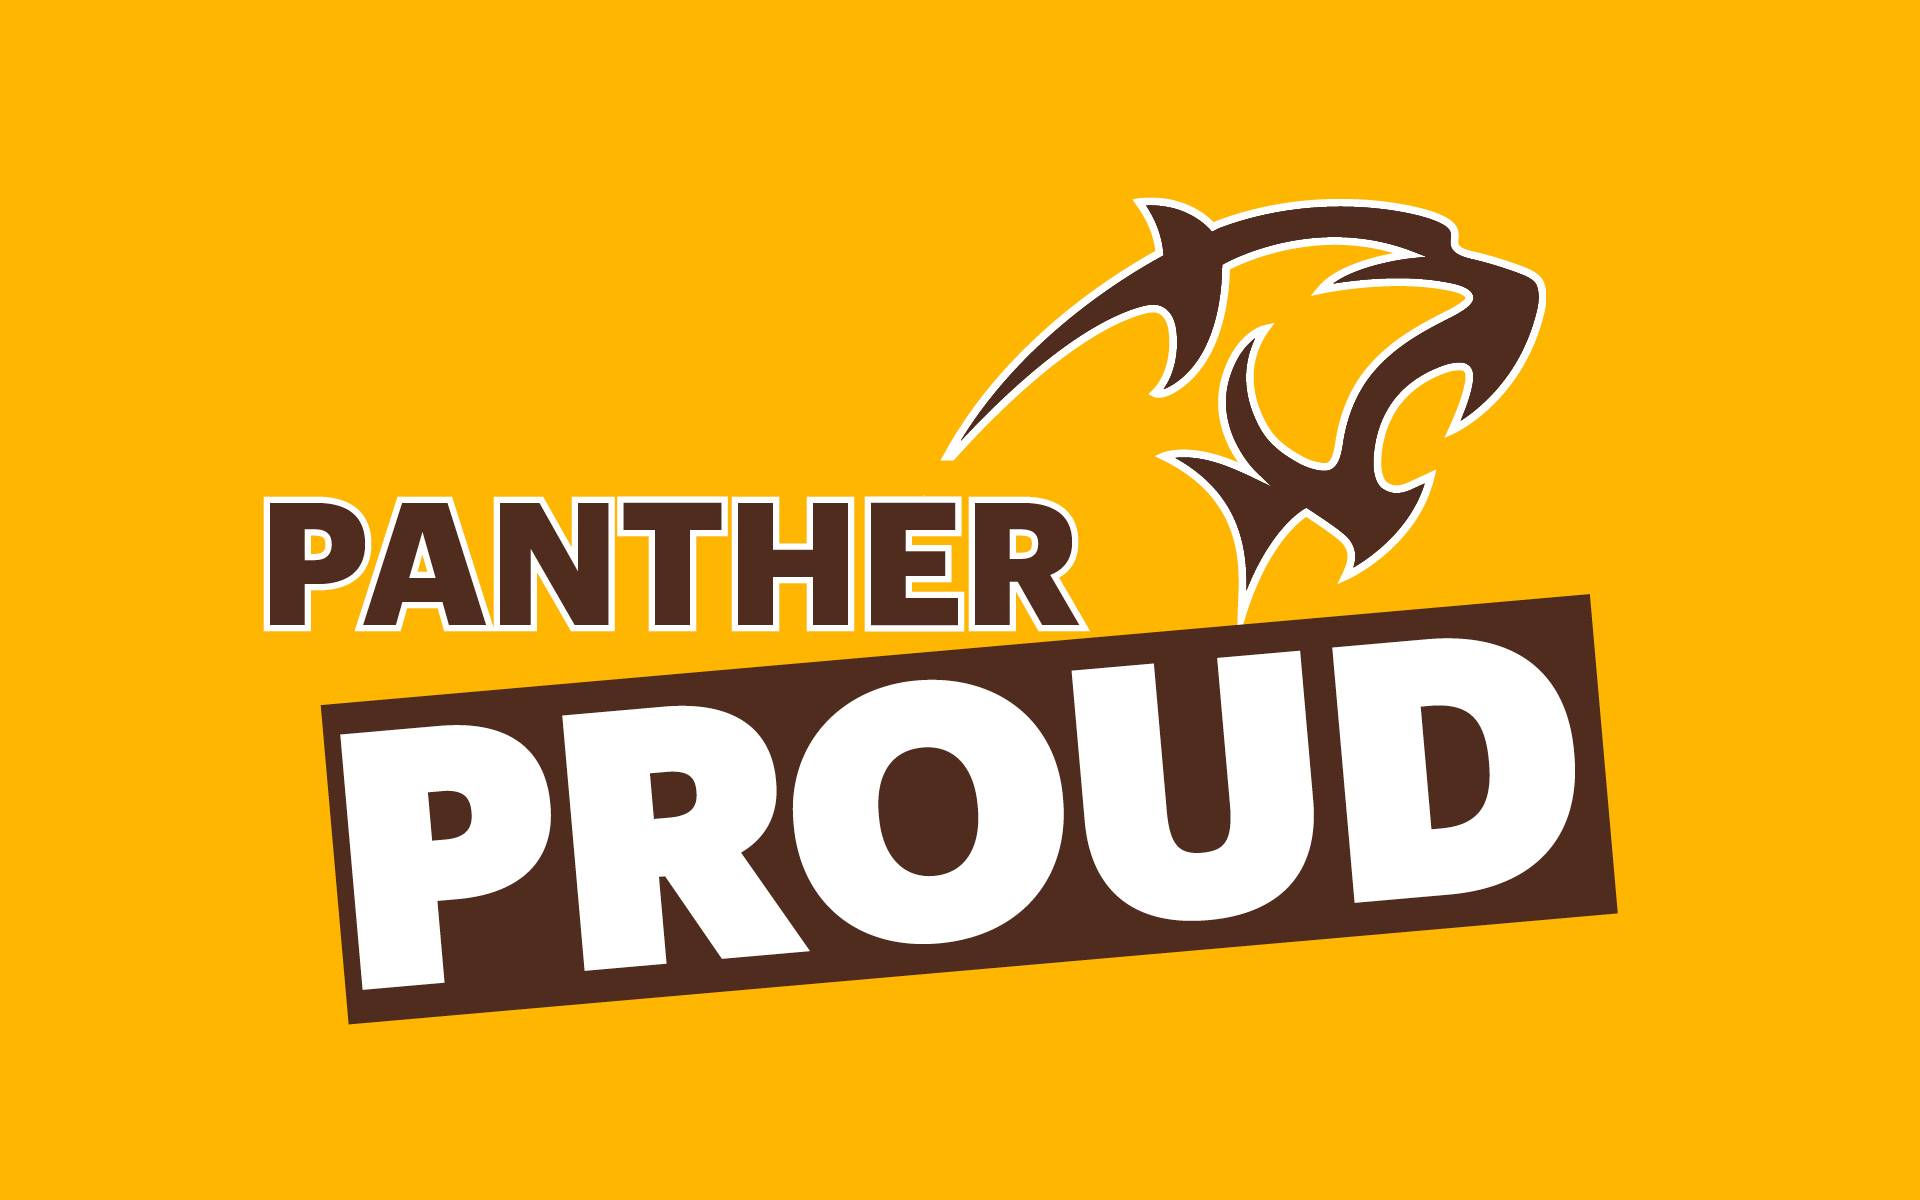 Adelphi Panther Proud Wallpaper - Design Preview